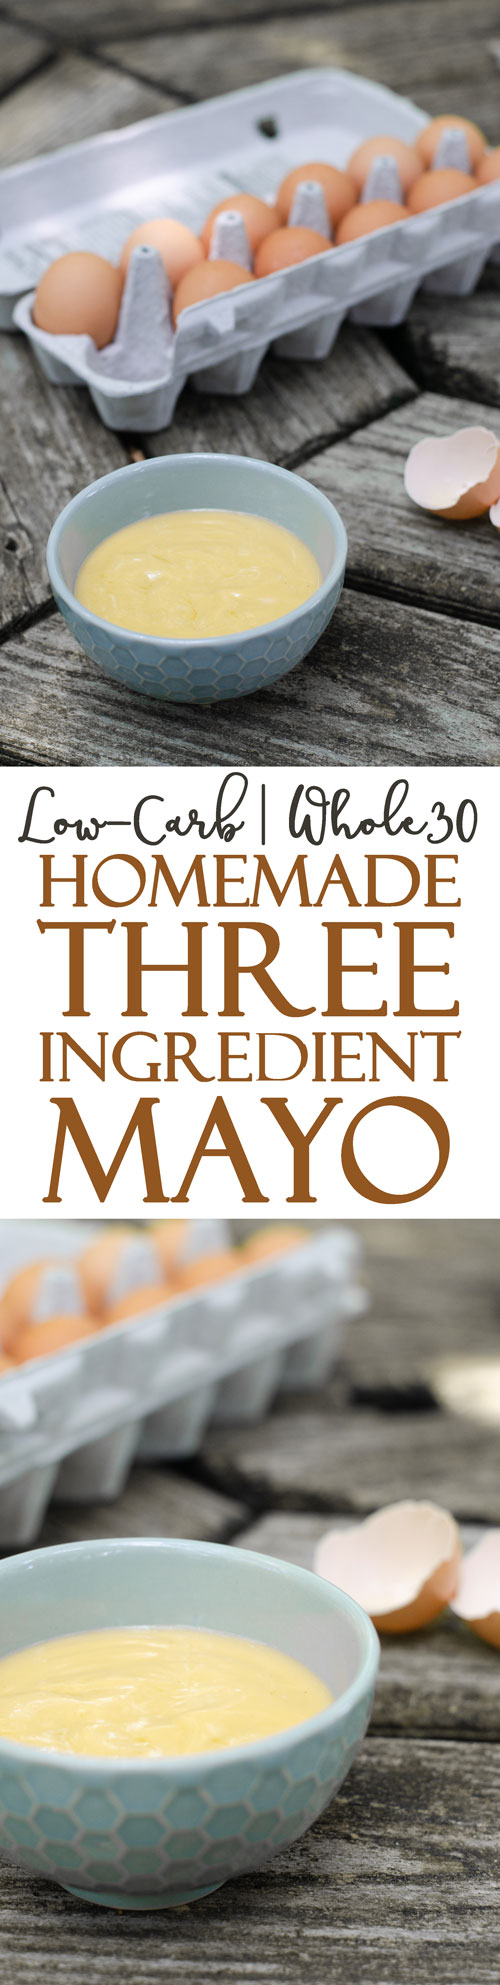 A tasty homemade three-ingredient mayo recipe that does not require any electric mixers to make! Simply shake in a sturdy jar to make! Gluten-free, grain-free, dairy-free, Paleo, ketogenic, low-carb, Whole30.